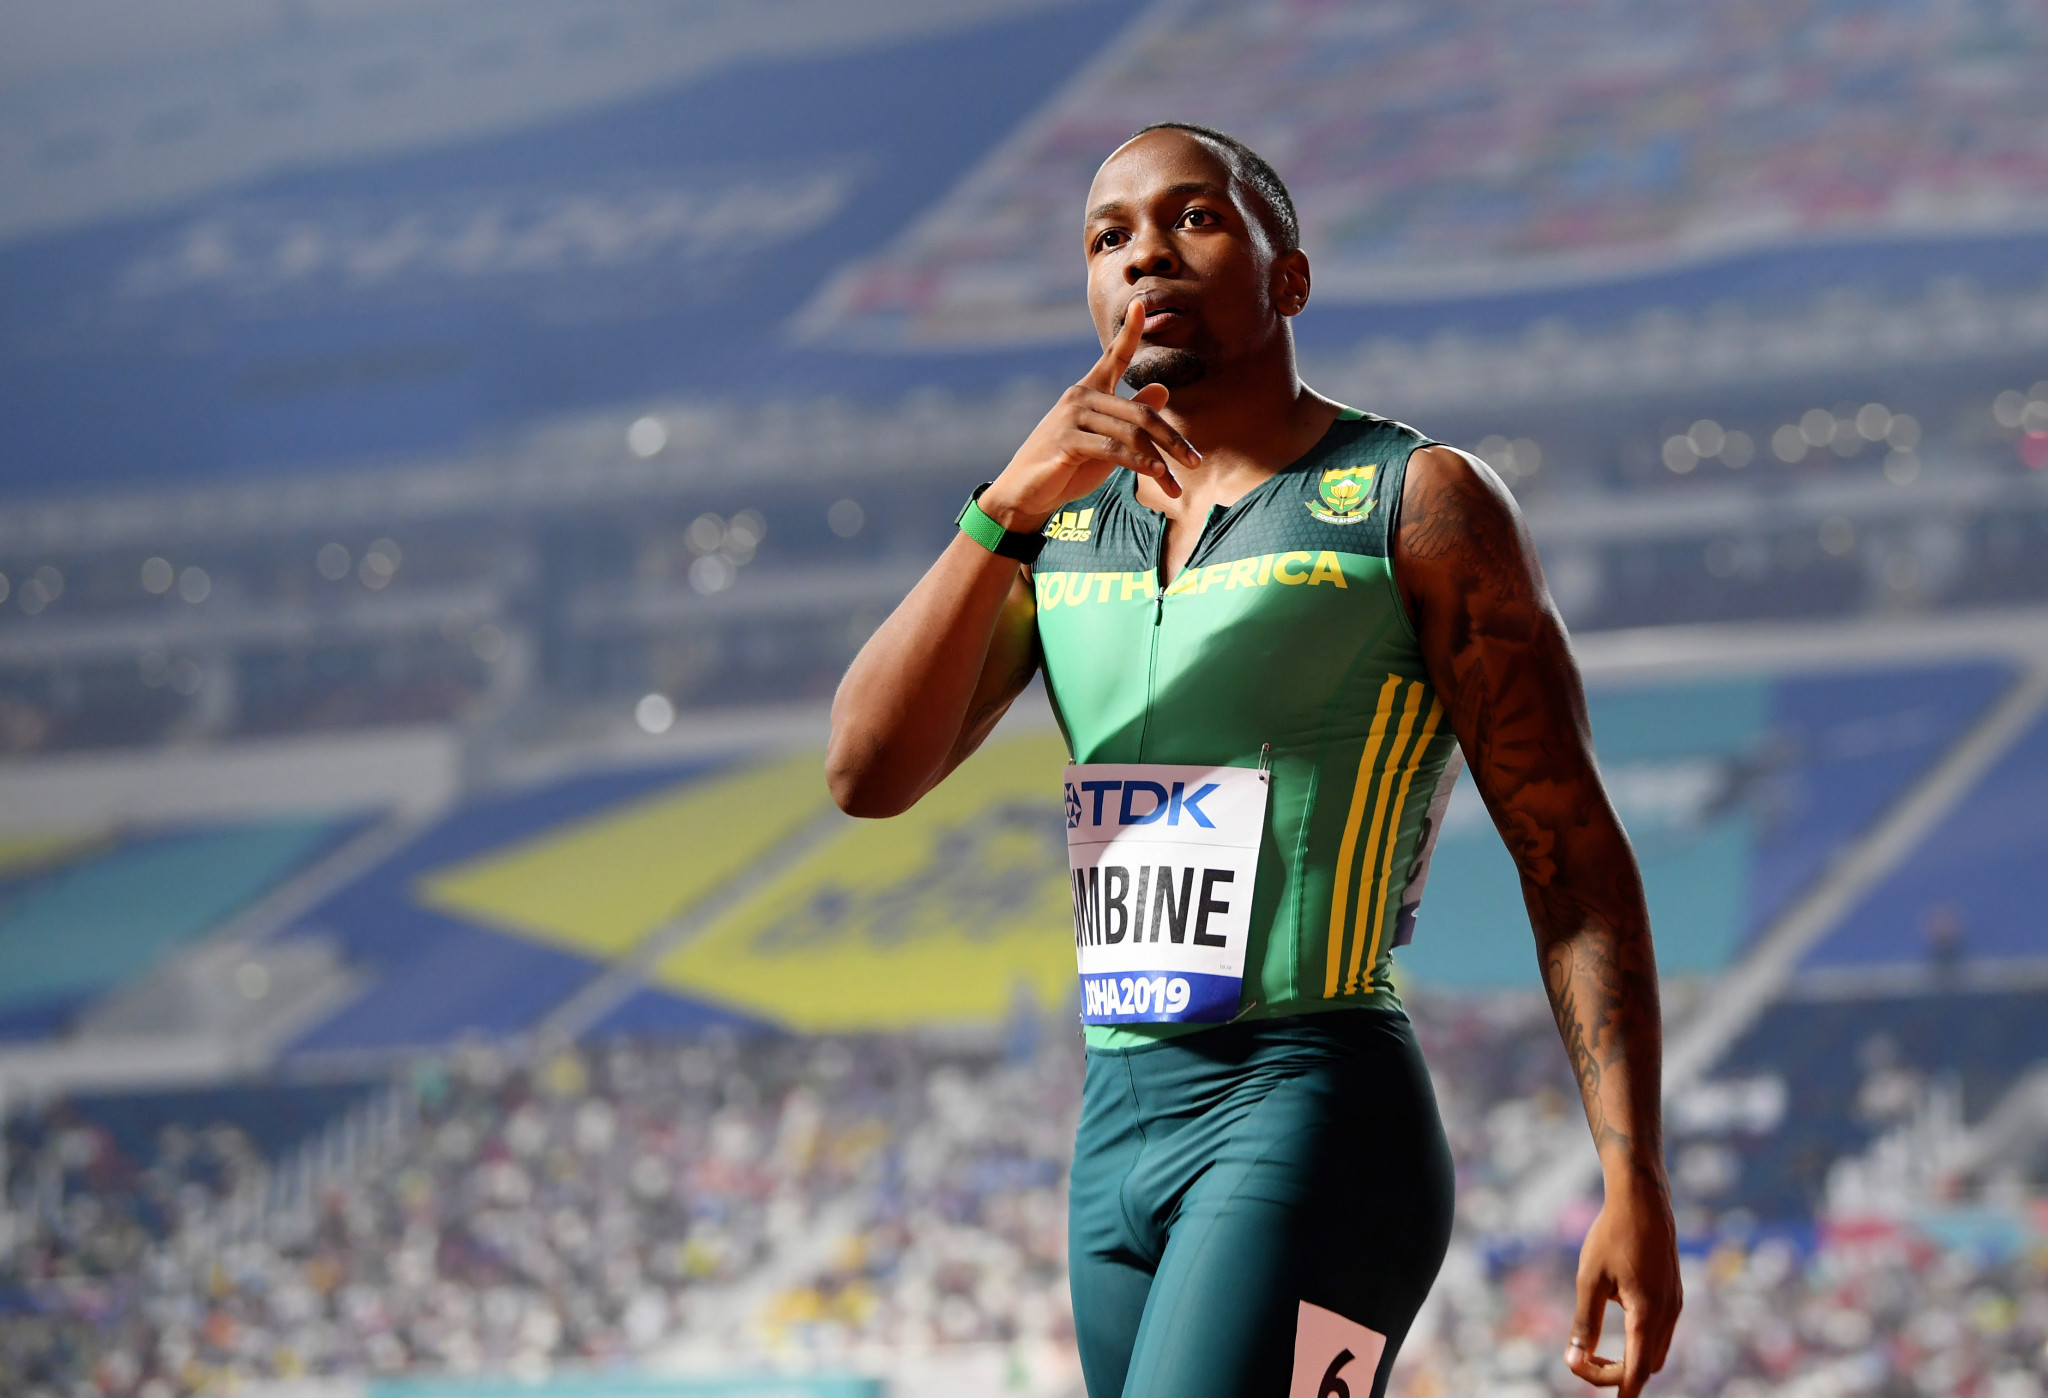 SA's Simbine makes triumphant return to the track in France - Sports Leo